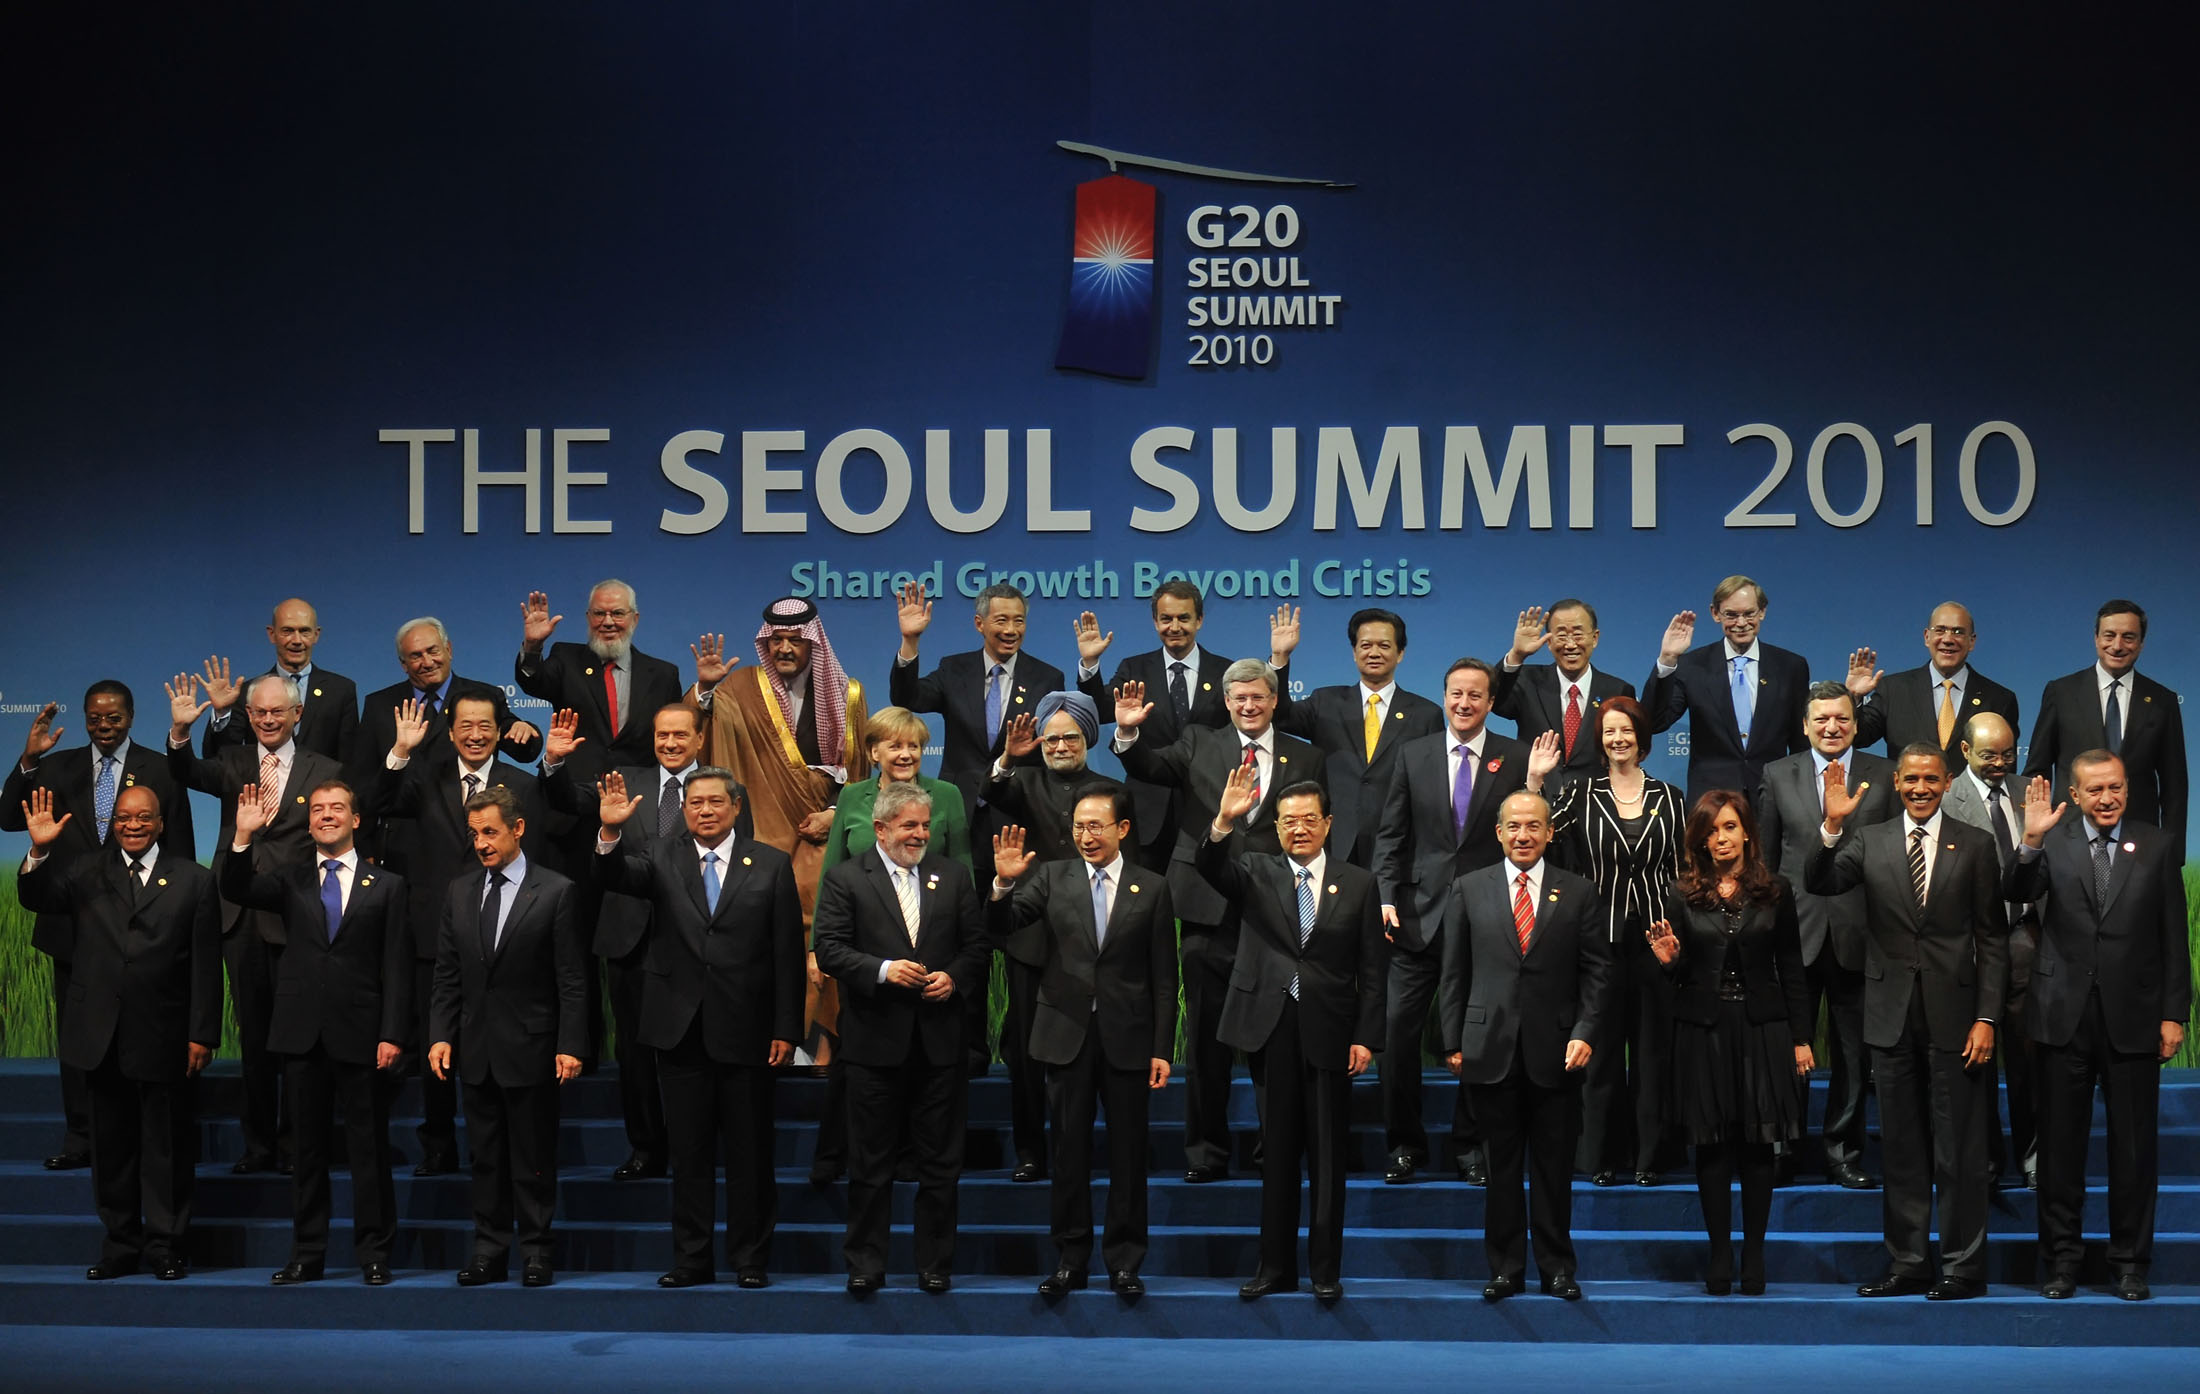 World leaders at the 2010 G20 Seoul summit